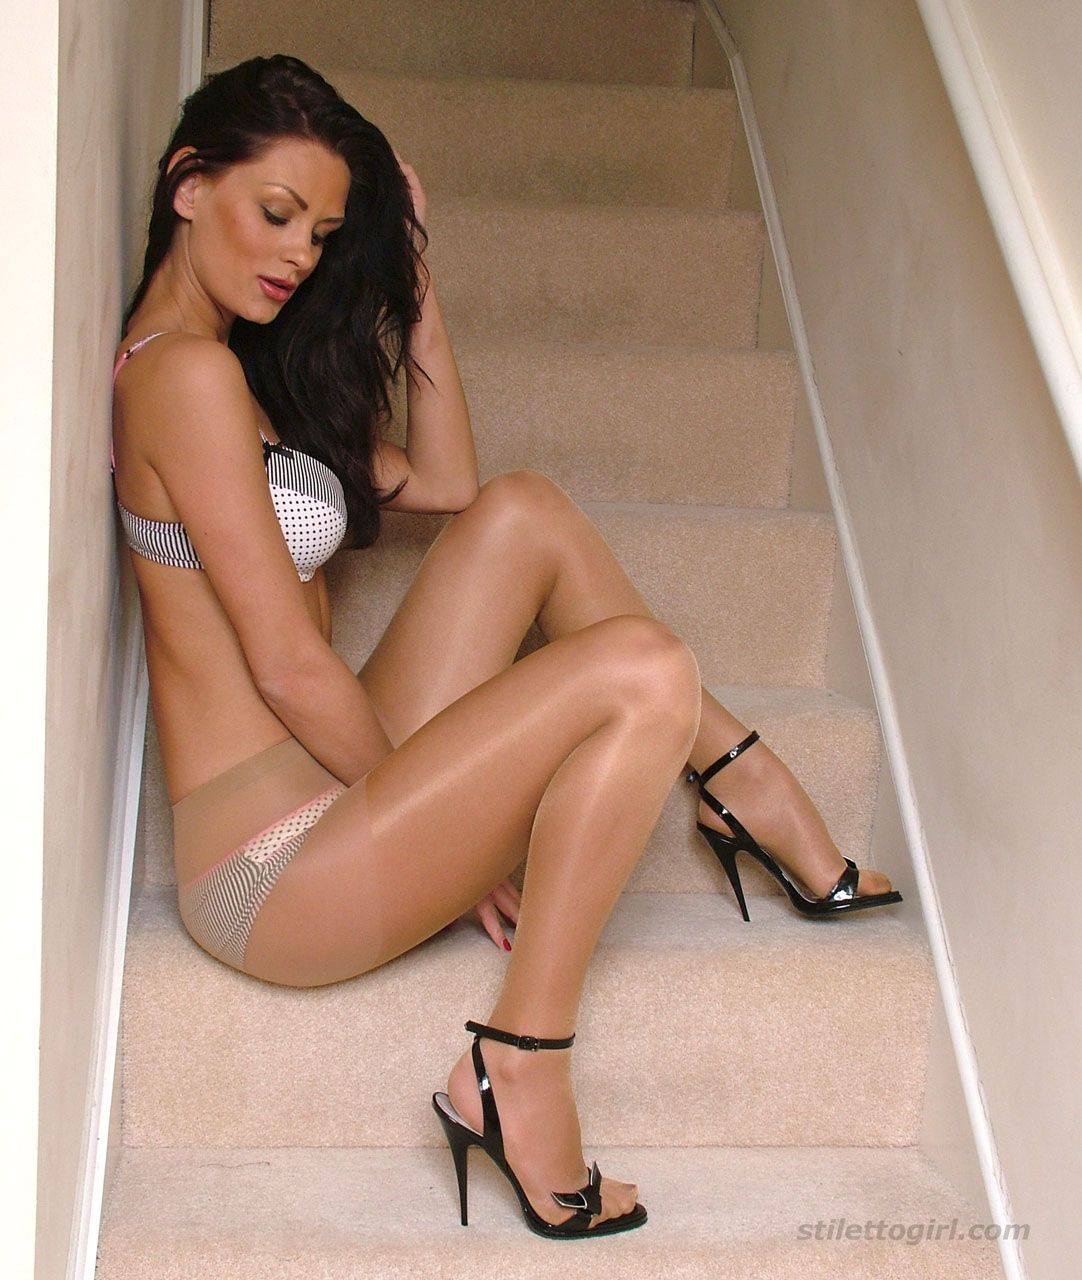 Legs high heels pantyhose